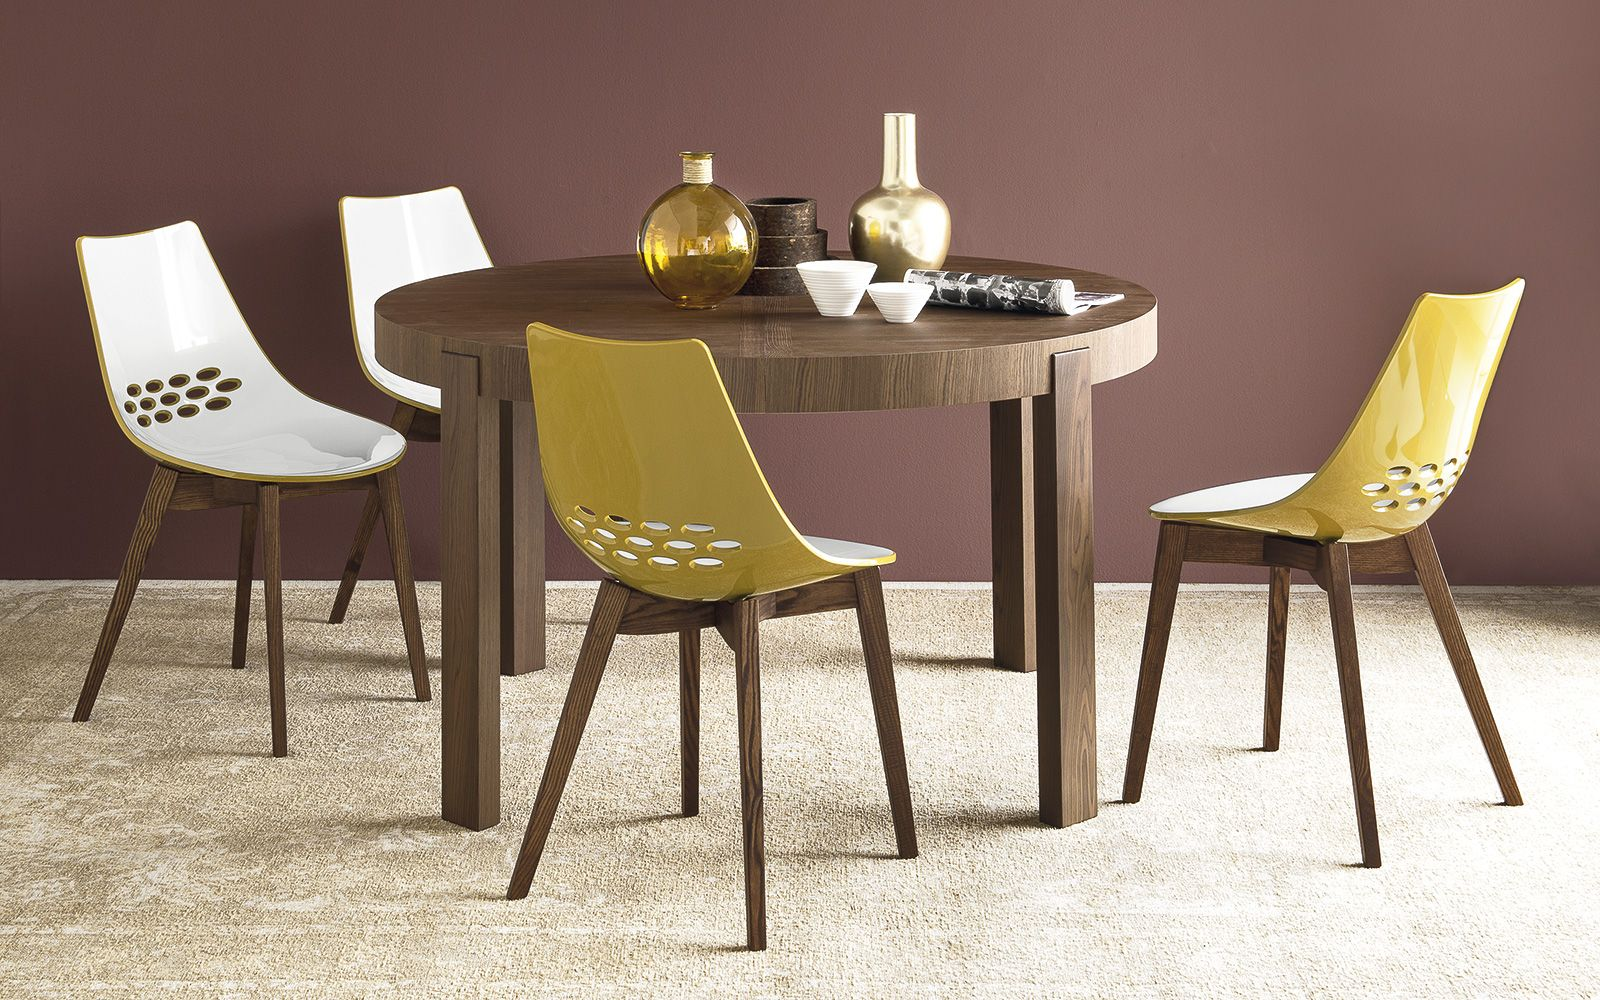 The jam w wooden chair by calligaris comes in a range of finishes